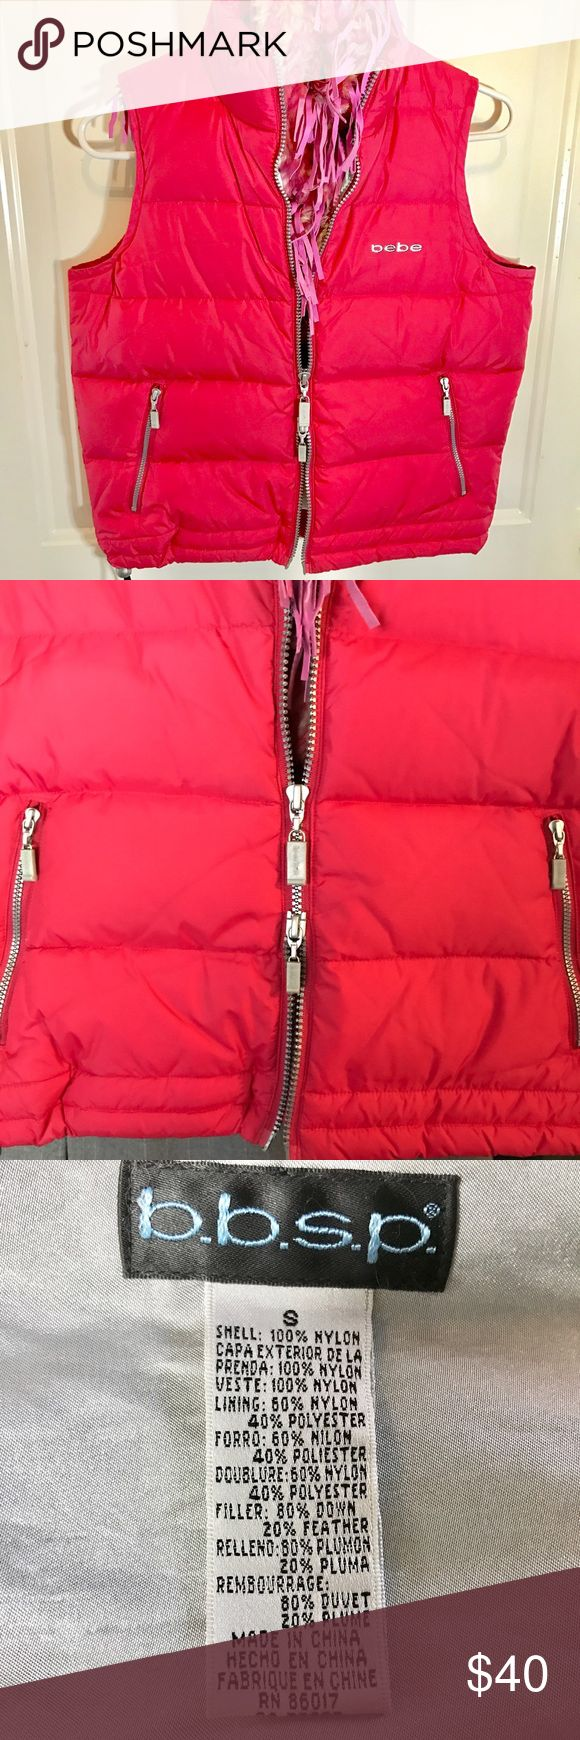 """Bebe Pink Down Puffer Vest In great condition this double silver zip up and from the bottom vest is 80% Down and 20% Feather. Gorgeous pinky red color nylon. Soft silver metallic lining. Two zip pockets. Two adjustable pulls at the bottom. Size Small. Pit to pit 18"""". Length 20"""".  ✨💞 Bebe Jackets & Coats Vests"""